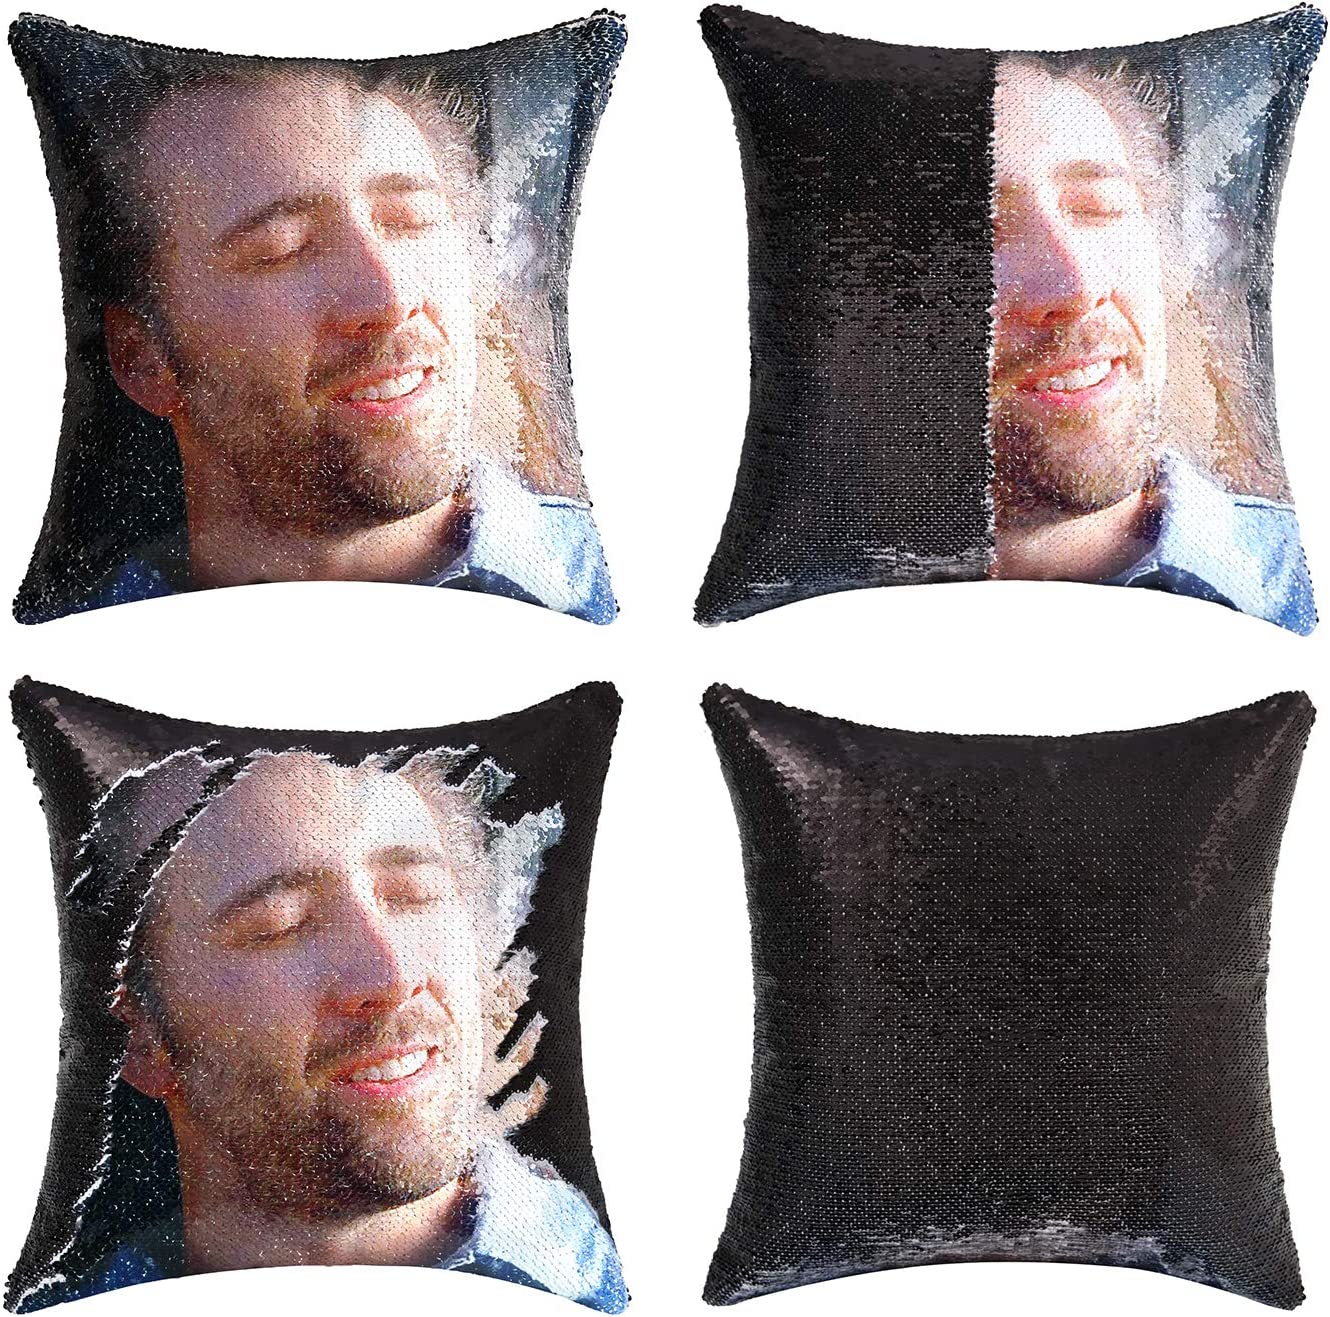 cygnus Nicolas Cage Sequin Pillow Cover Magic Mermaid Reversible Pillowcase That Color Changes Home Decor Throw Pillow Case Sofa Cushion Cover (Black Sequin)